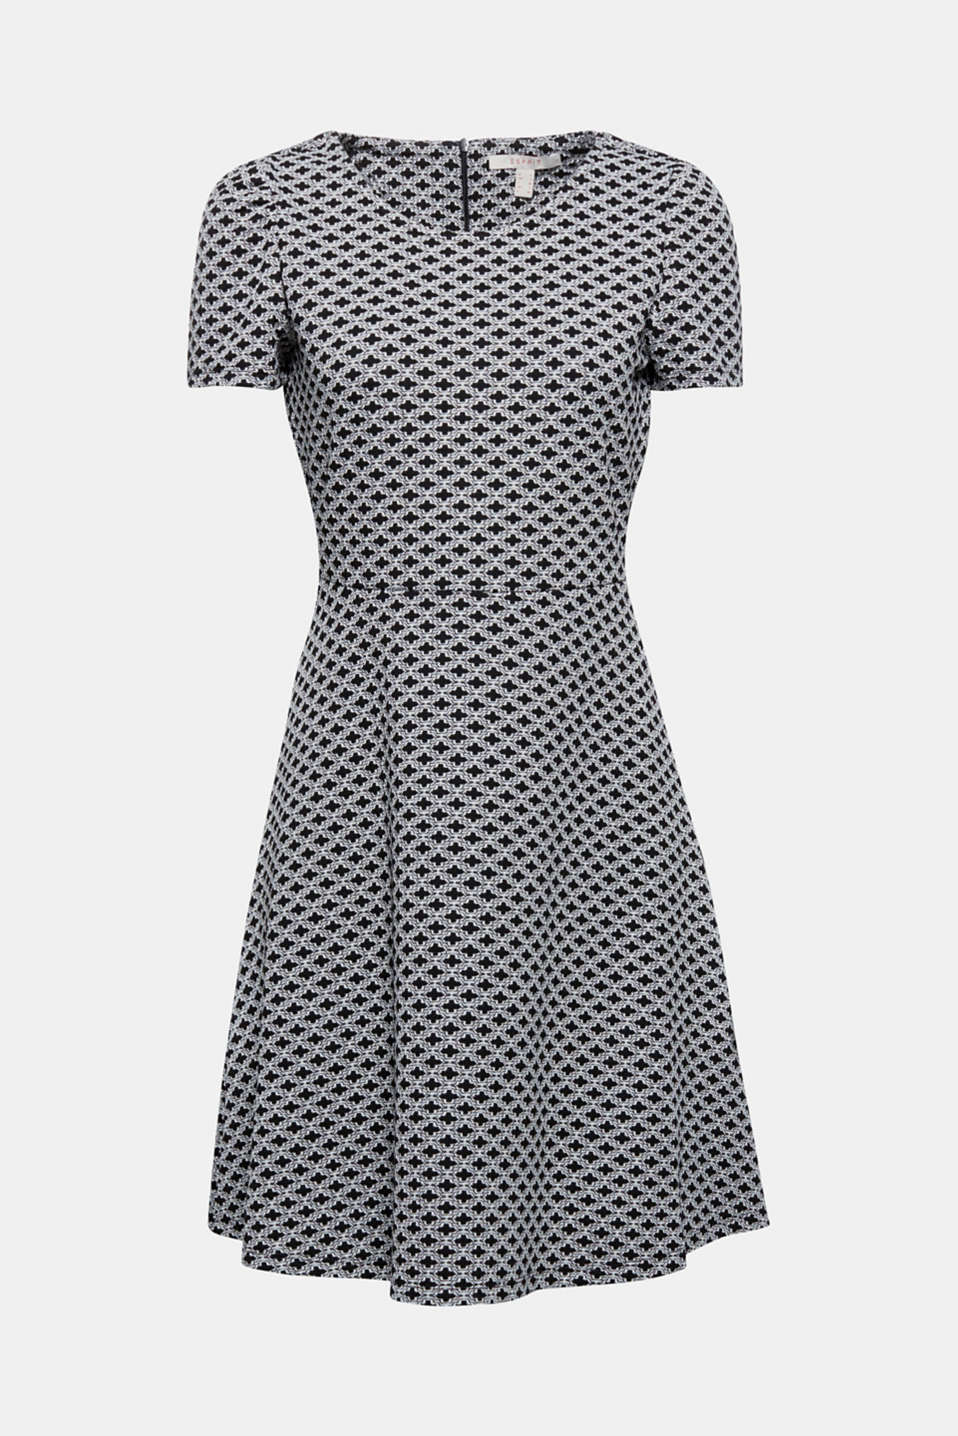 Looks super chic and is just as comfy: jersey dress with an ornamental jacquard pattern and a swirling skirt! The percentage of elastane provides a fantastic, figure-hugging fit.